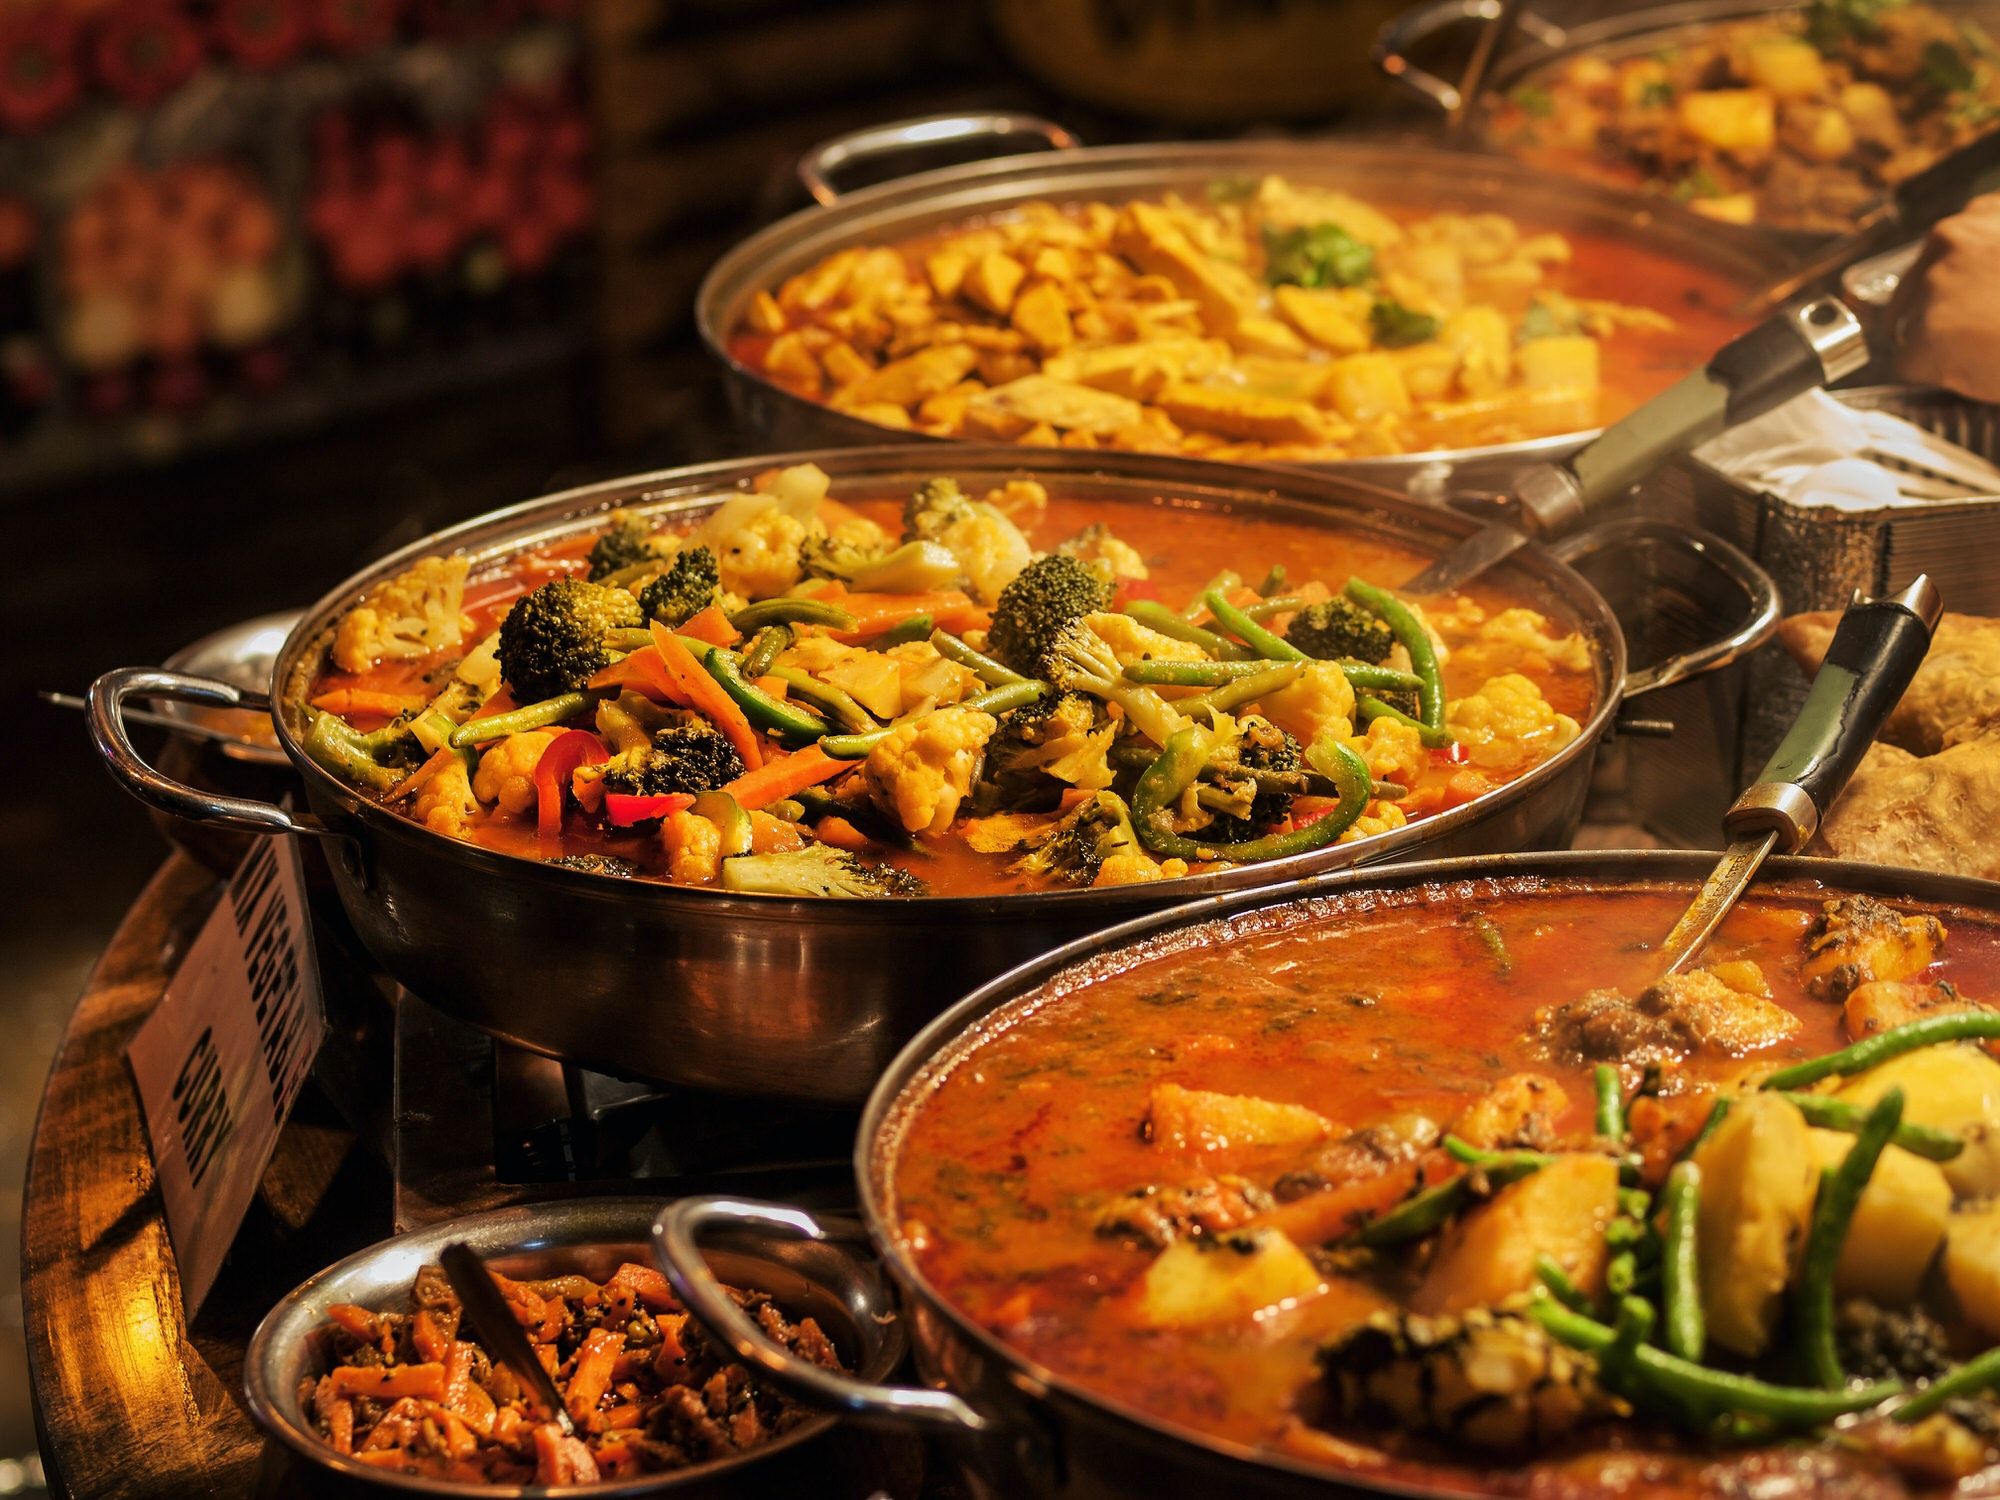 A selection of vegetable curries at an Indian takeaway in a London market